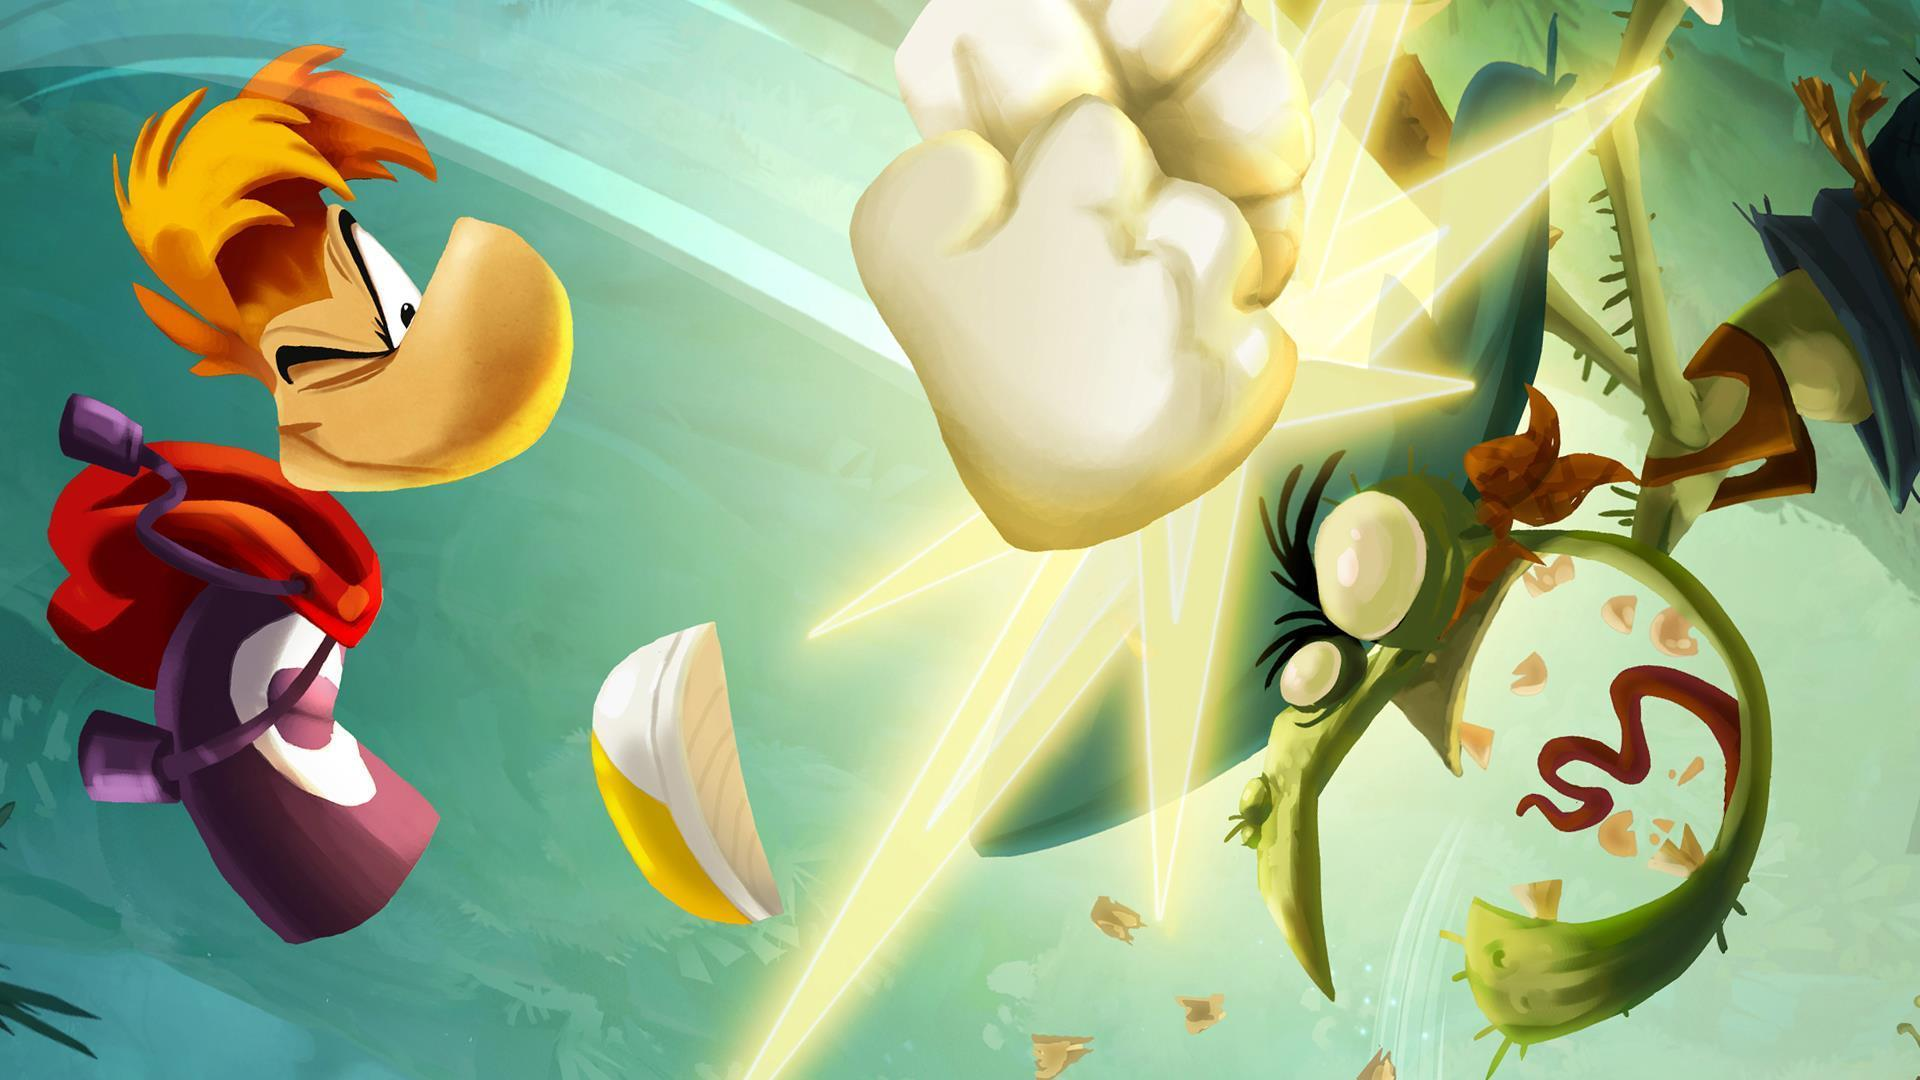 11 Rayman Legends Wallpapers